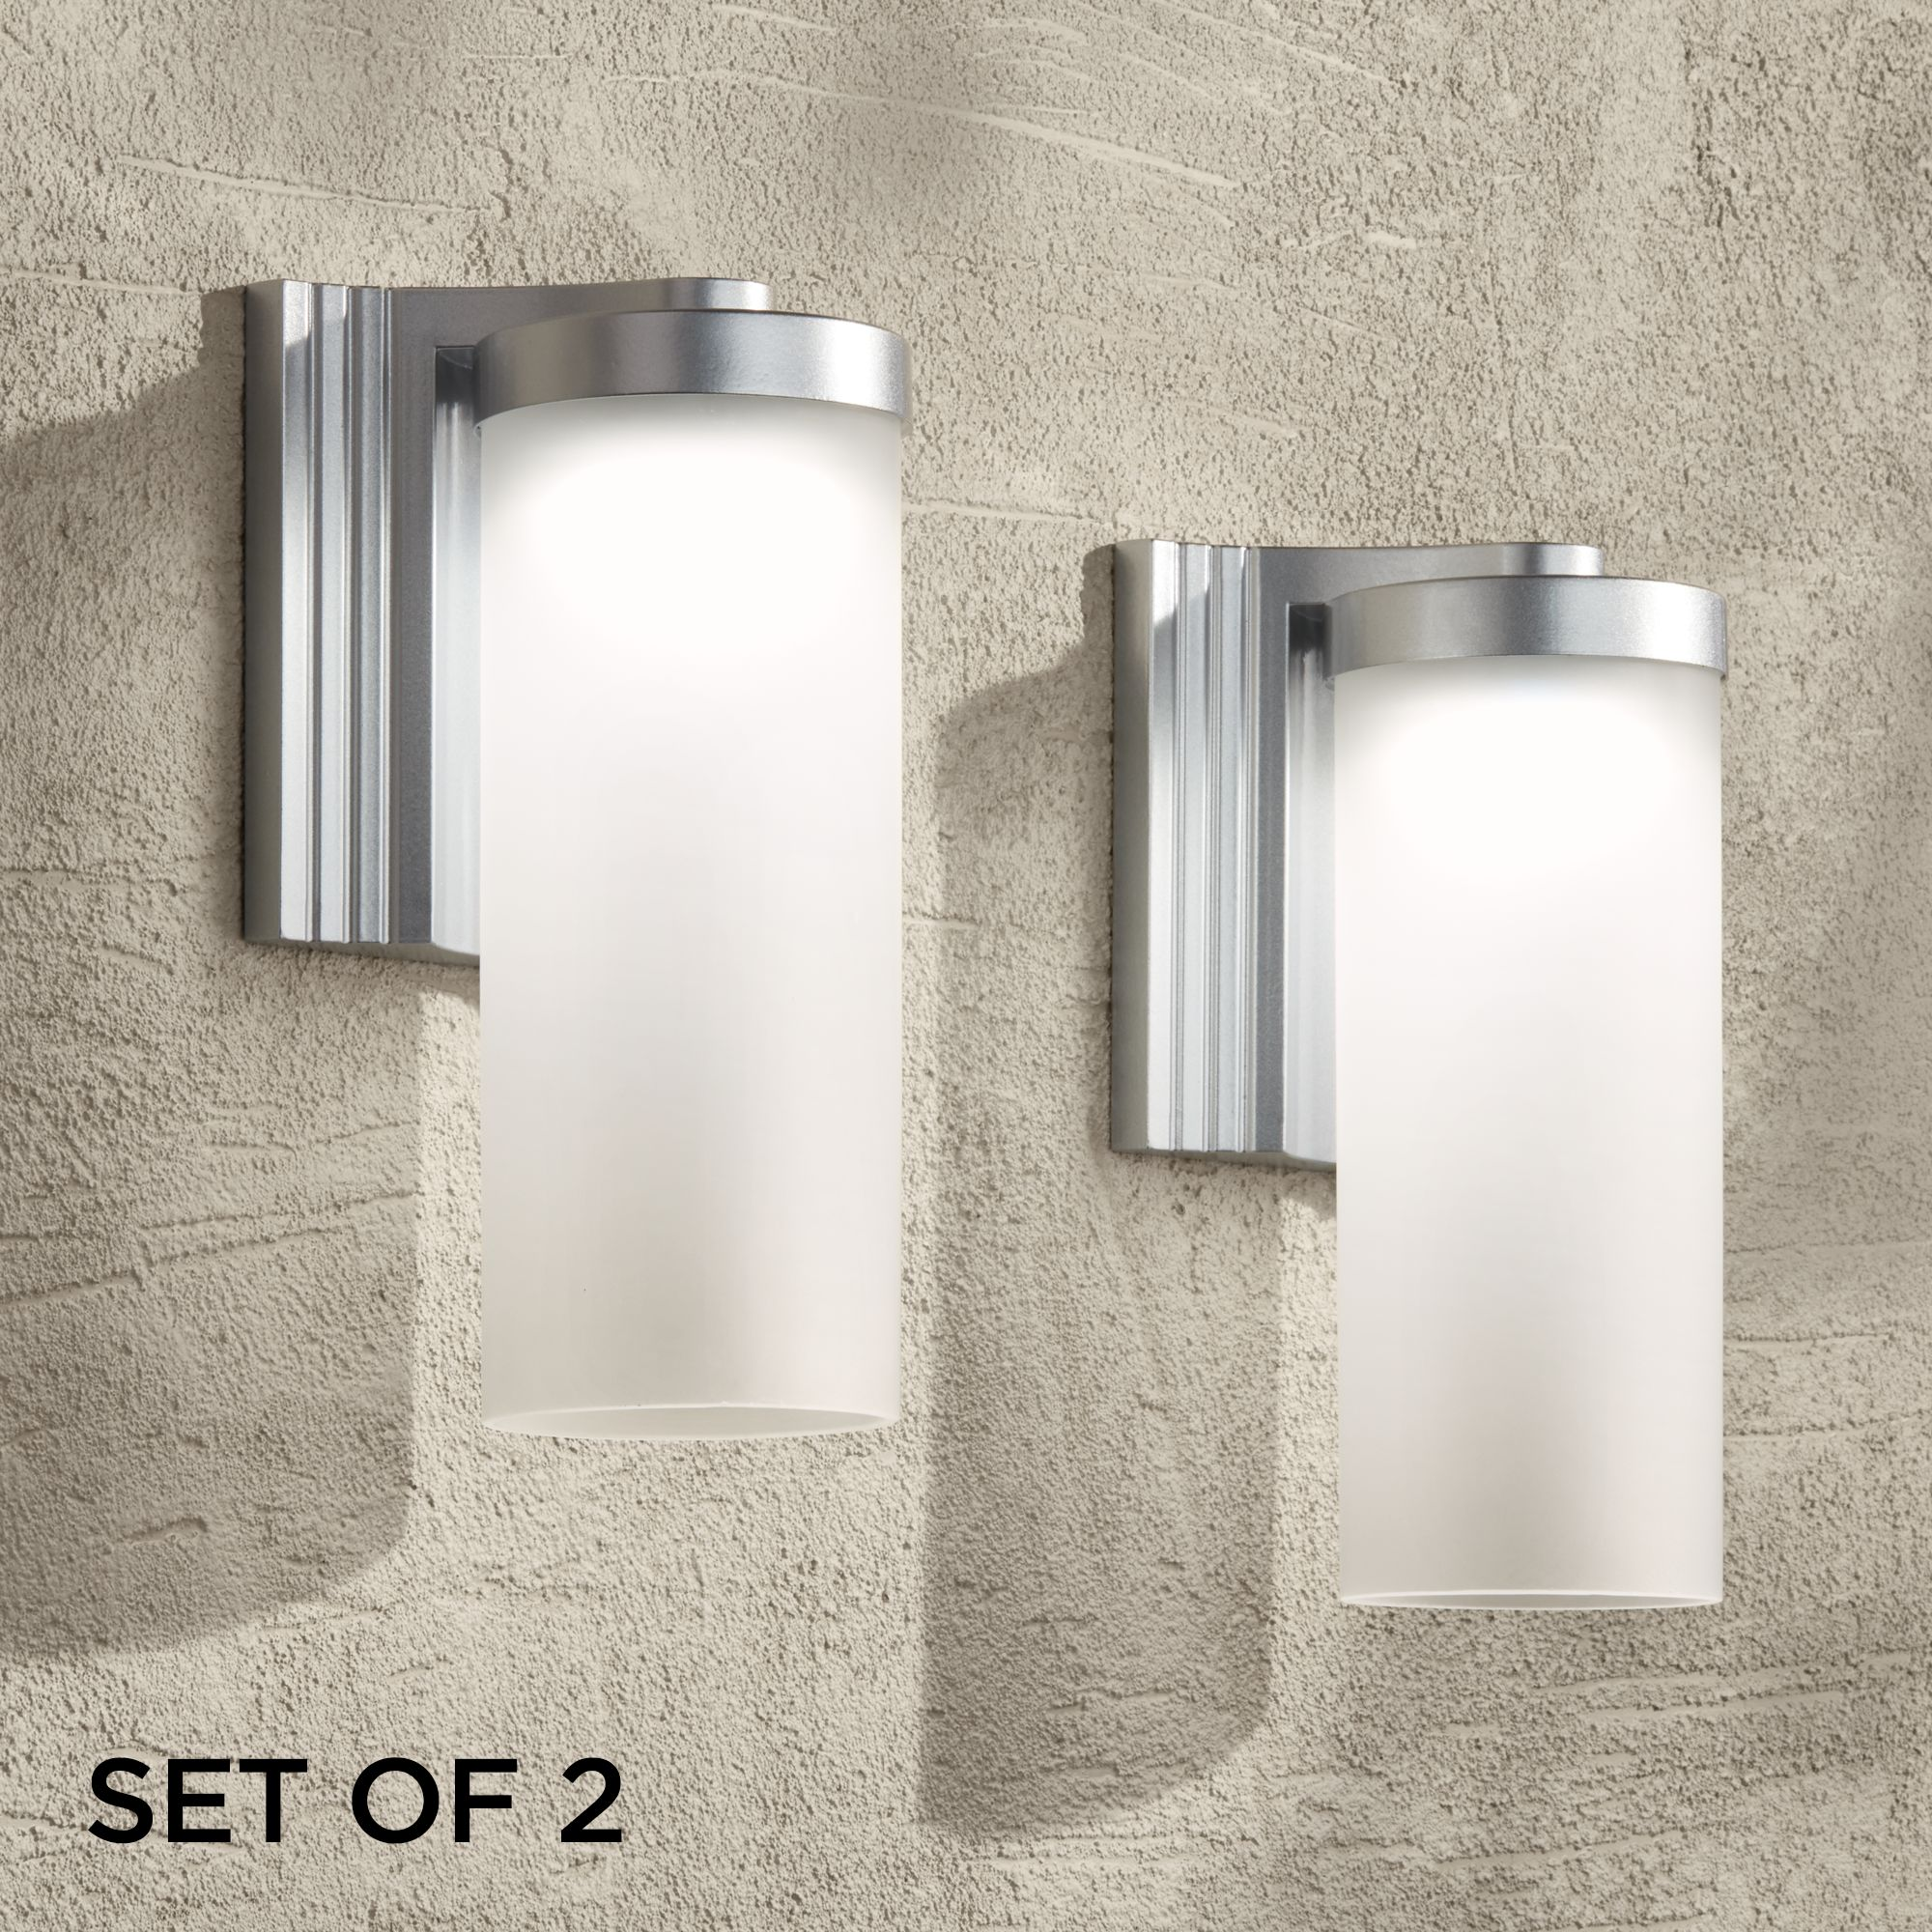 Exterior Led Light Fixtures Possini Euro Design Modern Outdoor Wall Light Fixtures Set Of 2 Led Silver 10 1 2